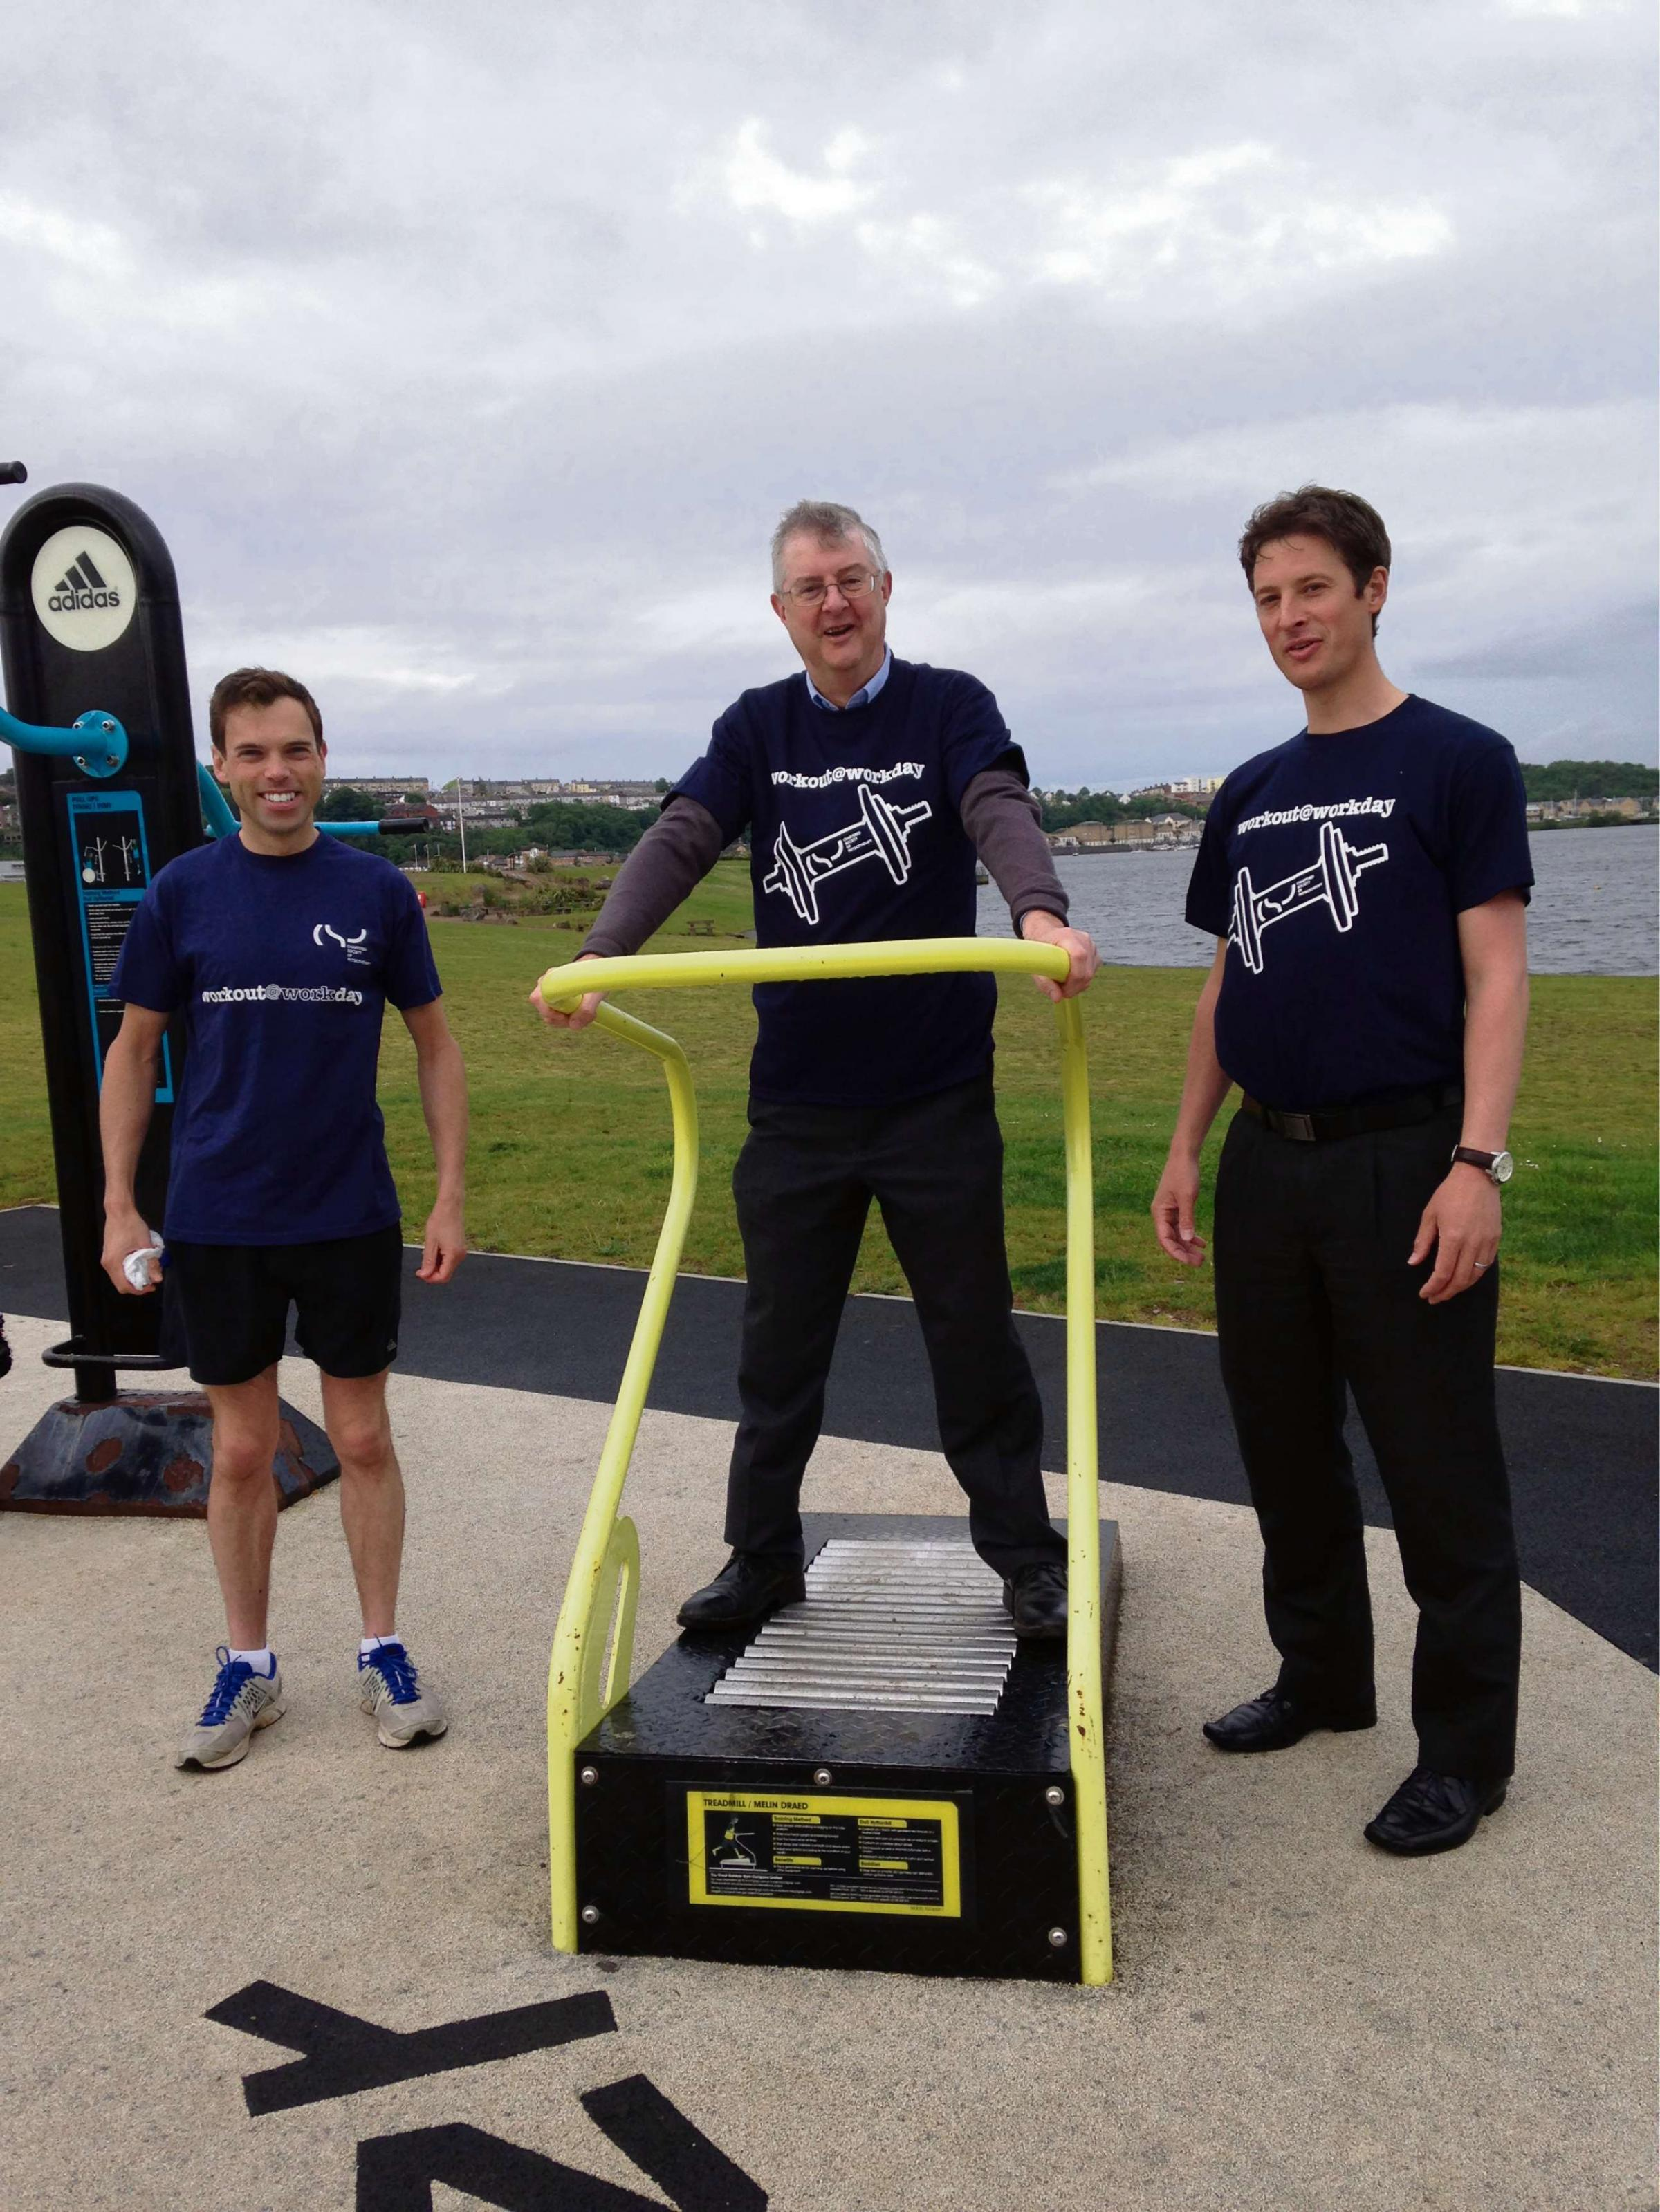 Sully Physiotherapist encourages Minister's to workout before work